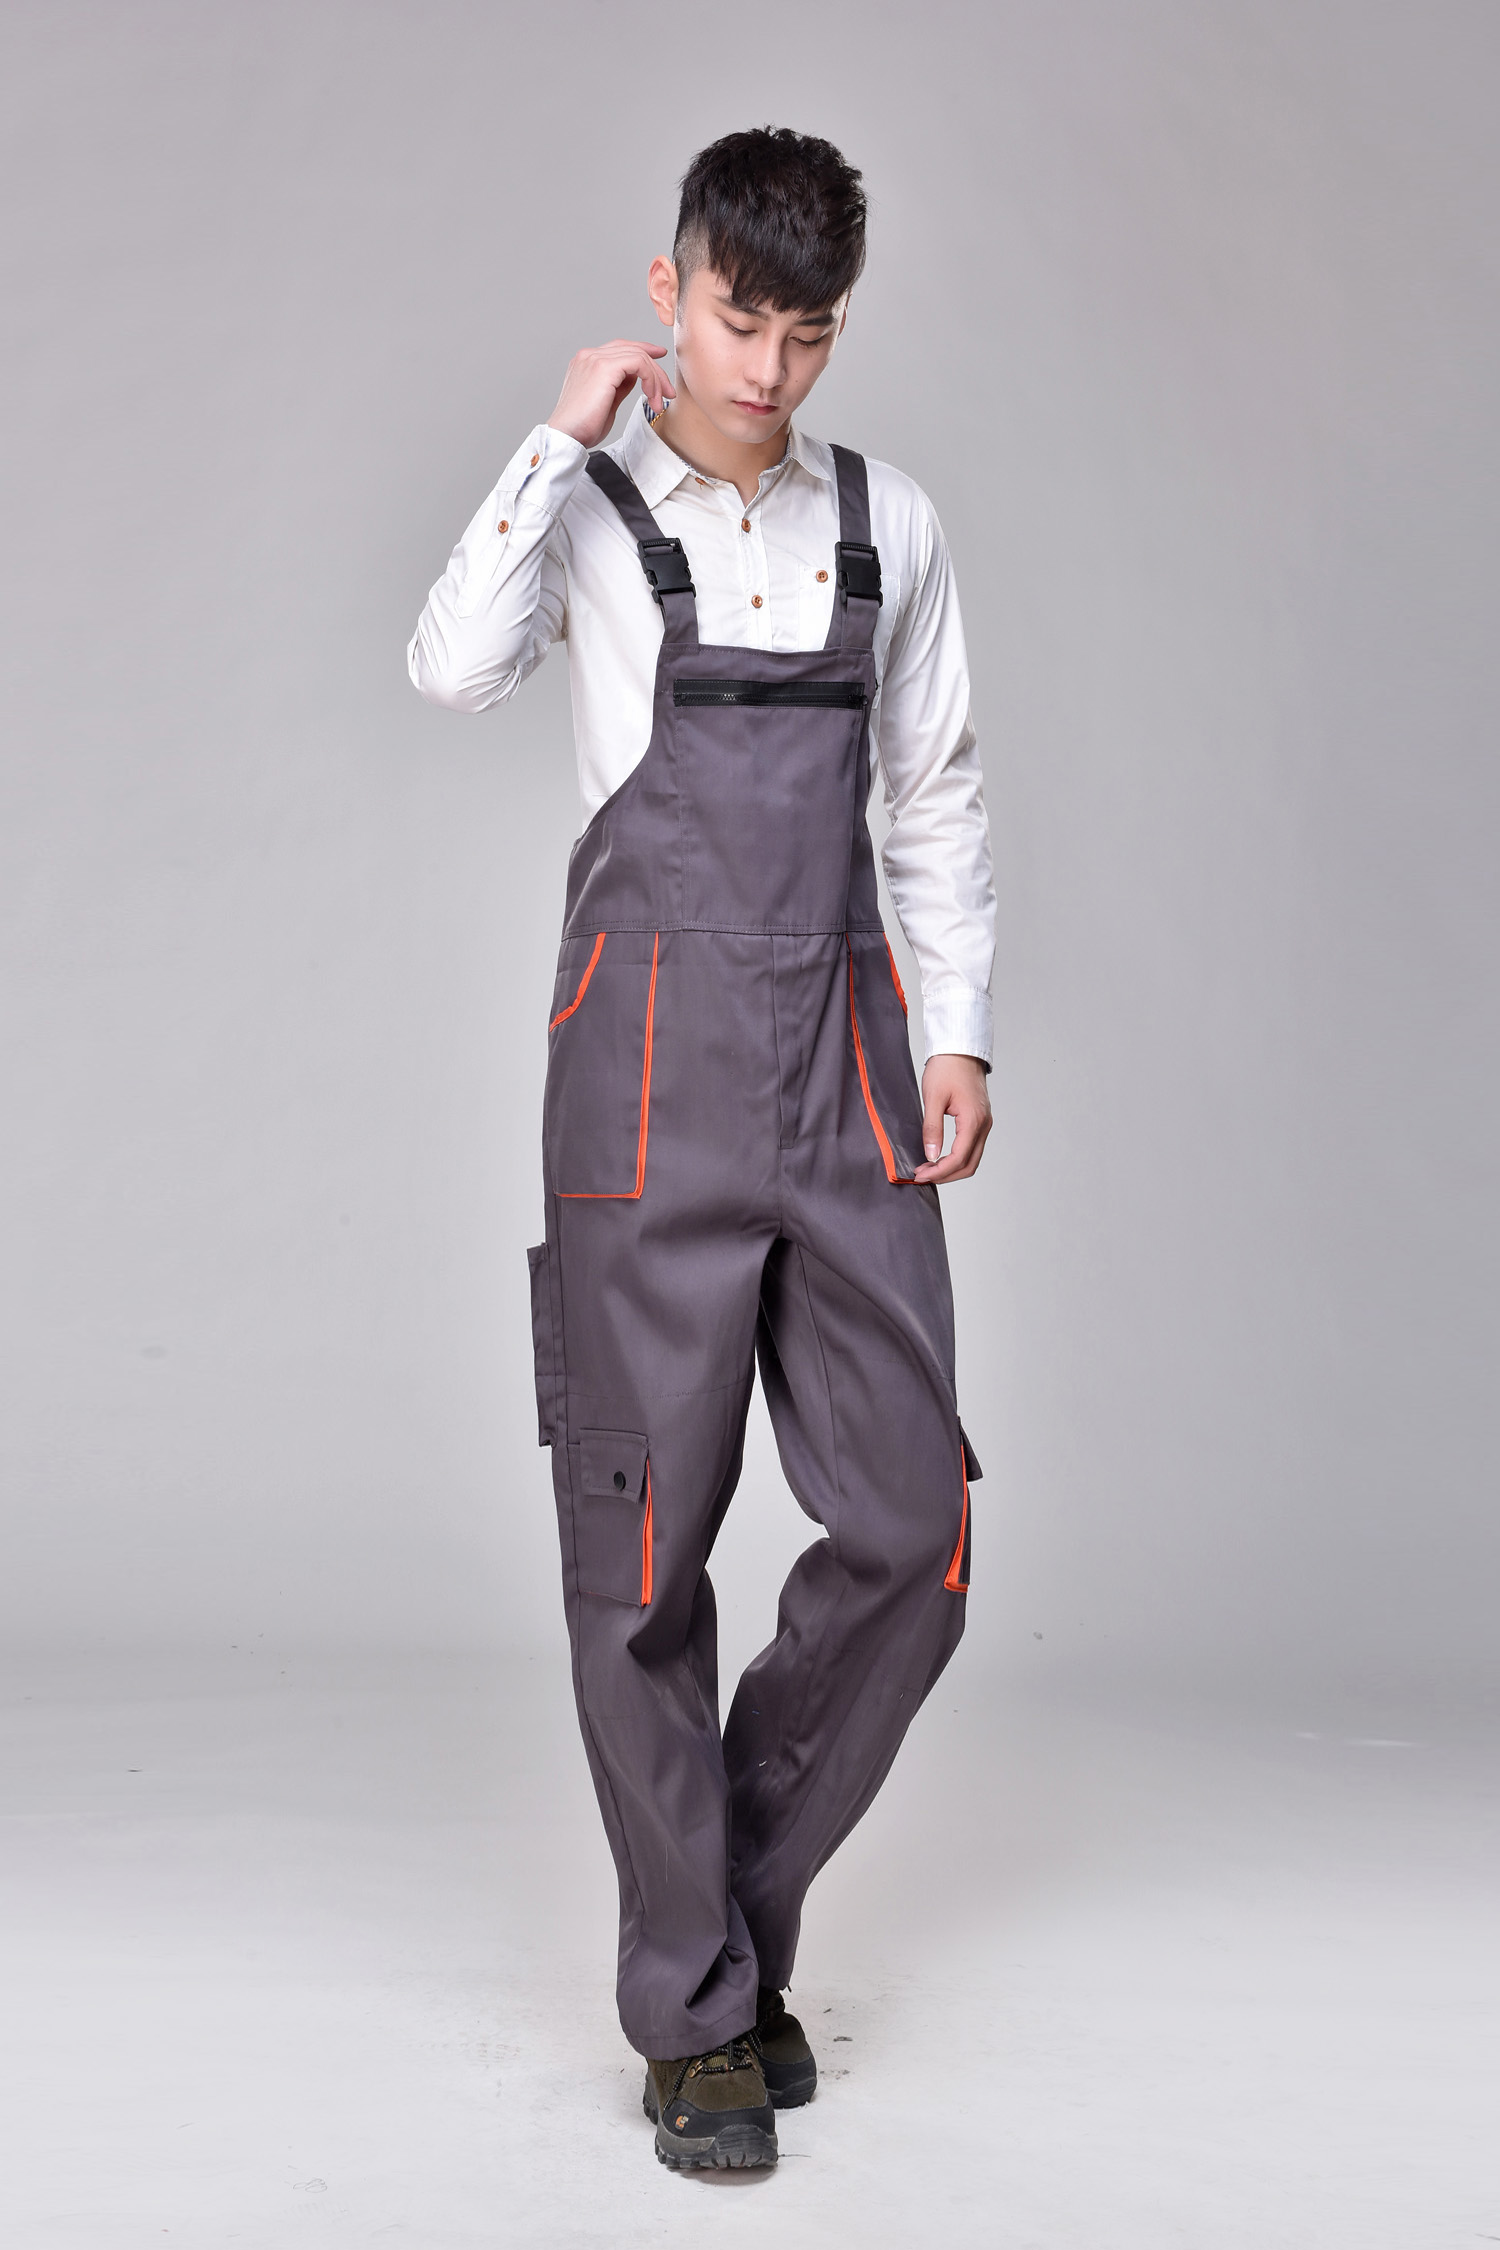 Work clothes one-piece clothes labor protection clothes wear-resistant clothes all the year round one-piece work clothes. Painting for mens car repair